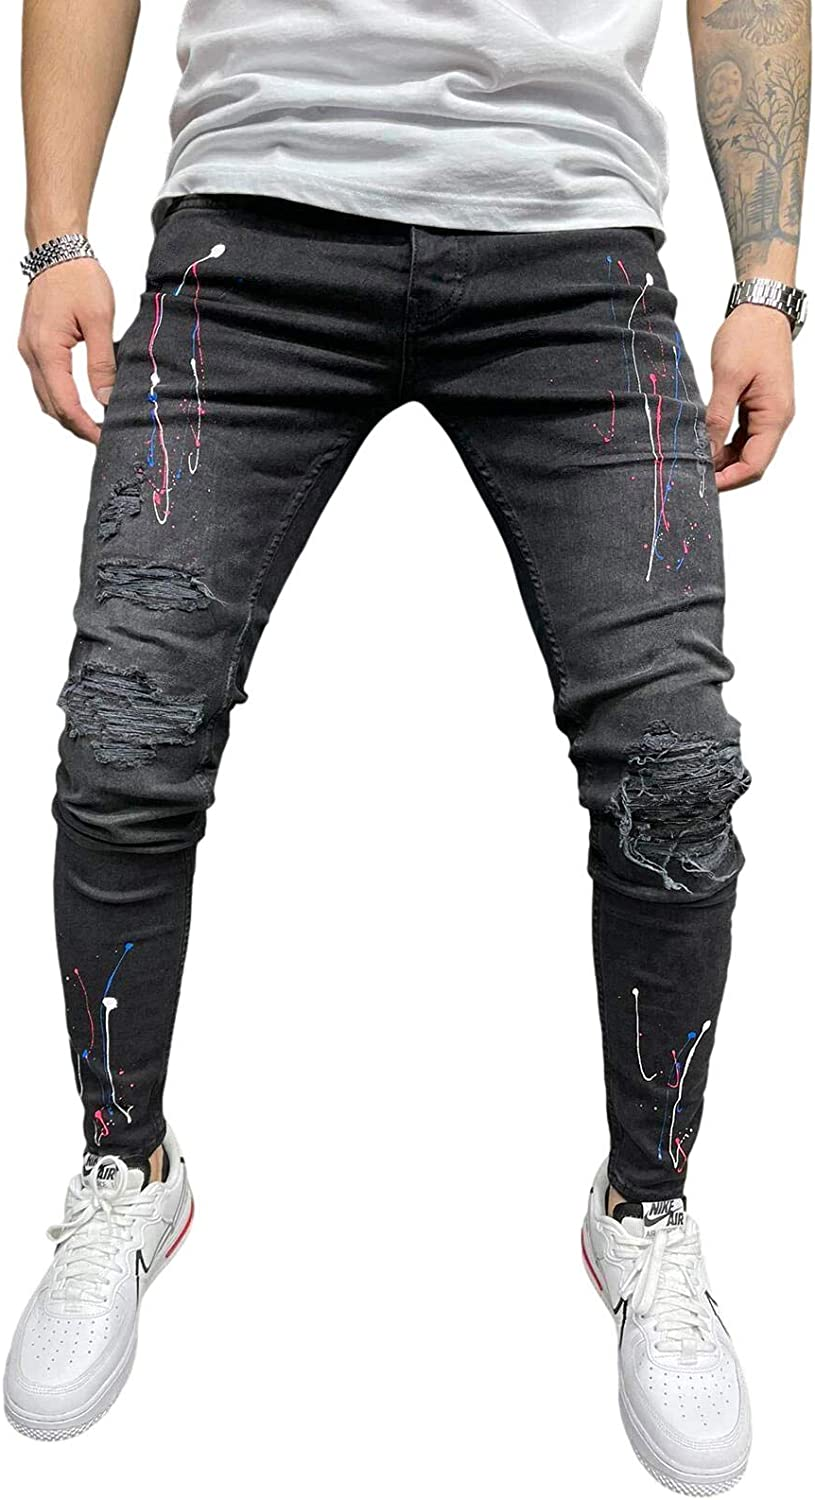 Bowanadacles Men's Distressed Skinny Jeans Slim National uniform free shipping Je New sales Patchwork Fit